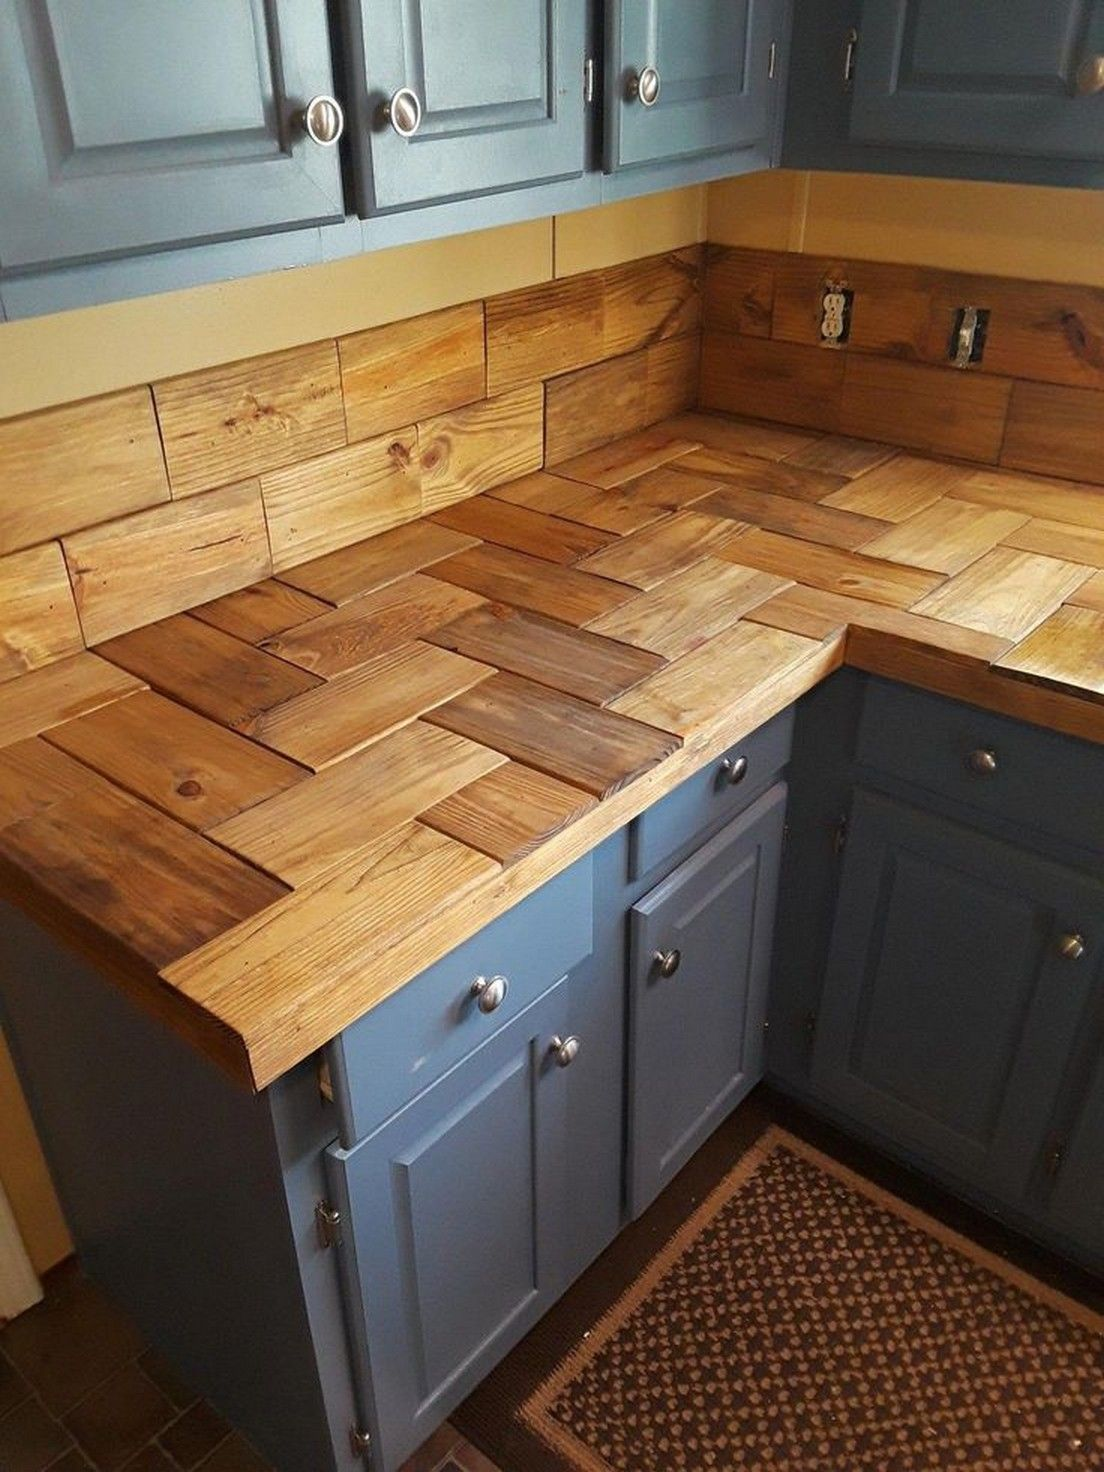 43 Beautiful Rustic Kitchen Cabinets Ideas 2 Fieltro Net Rustic Kitchen Cabinets Rustic Kitchen Kitchen Cabinets